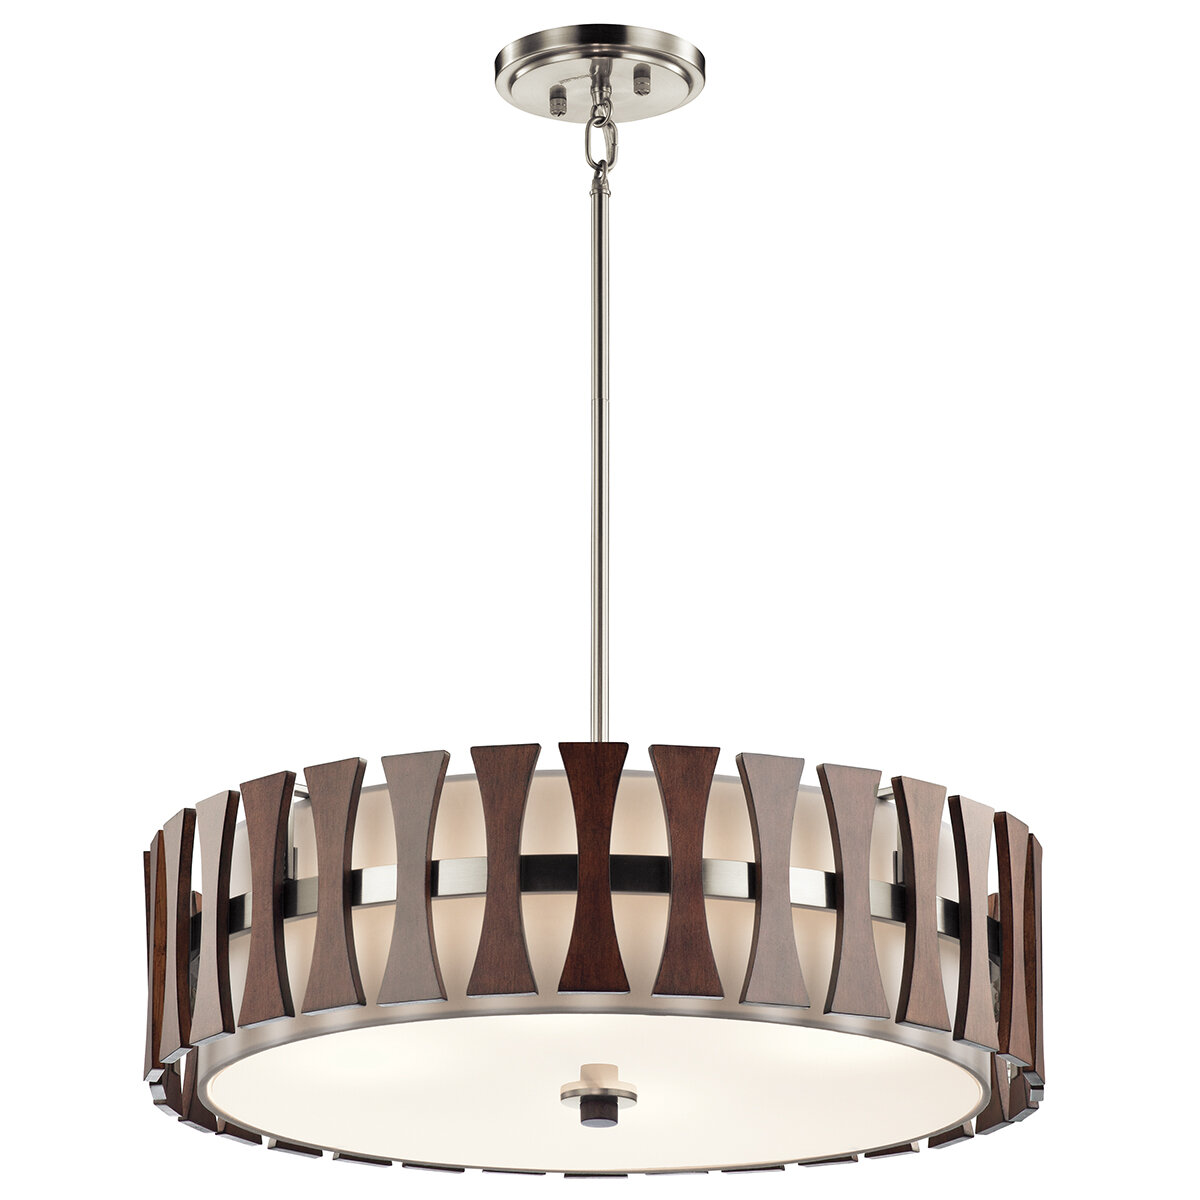 Kichler cirus 4 light drum pendant reviews wayfair